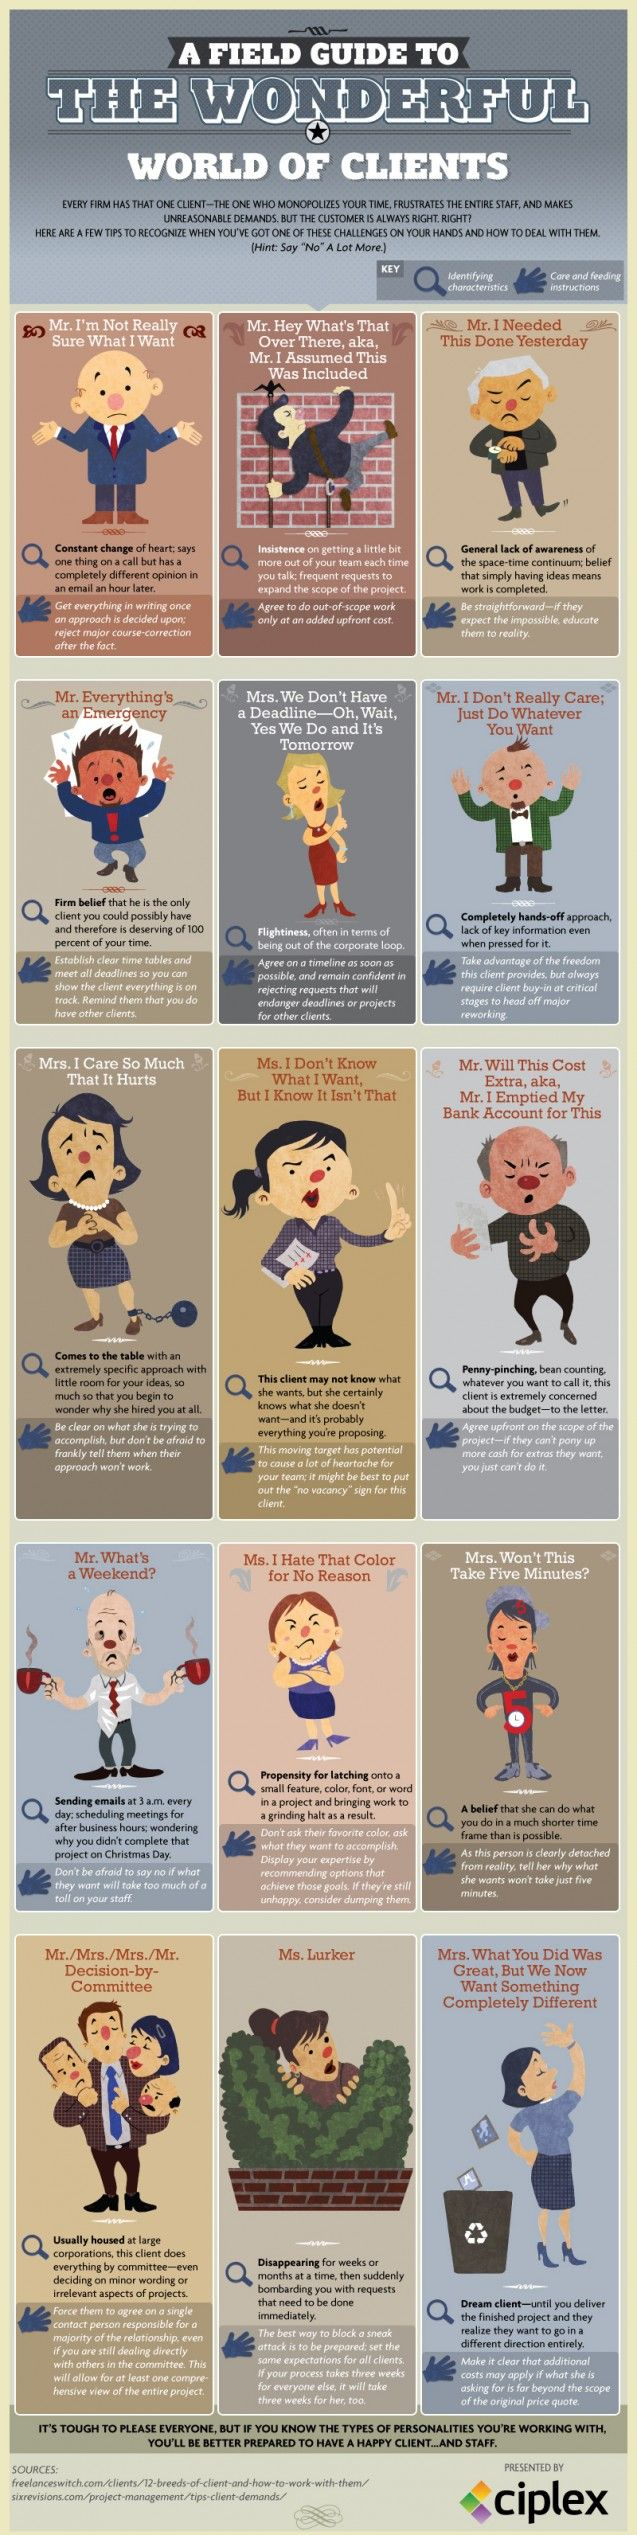 "A Guide To Working With 'Difficult' Clients. Do you have any of these "" difficult types"", that you have to work with?"